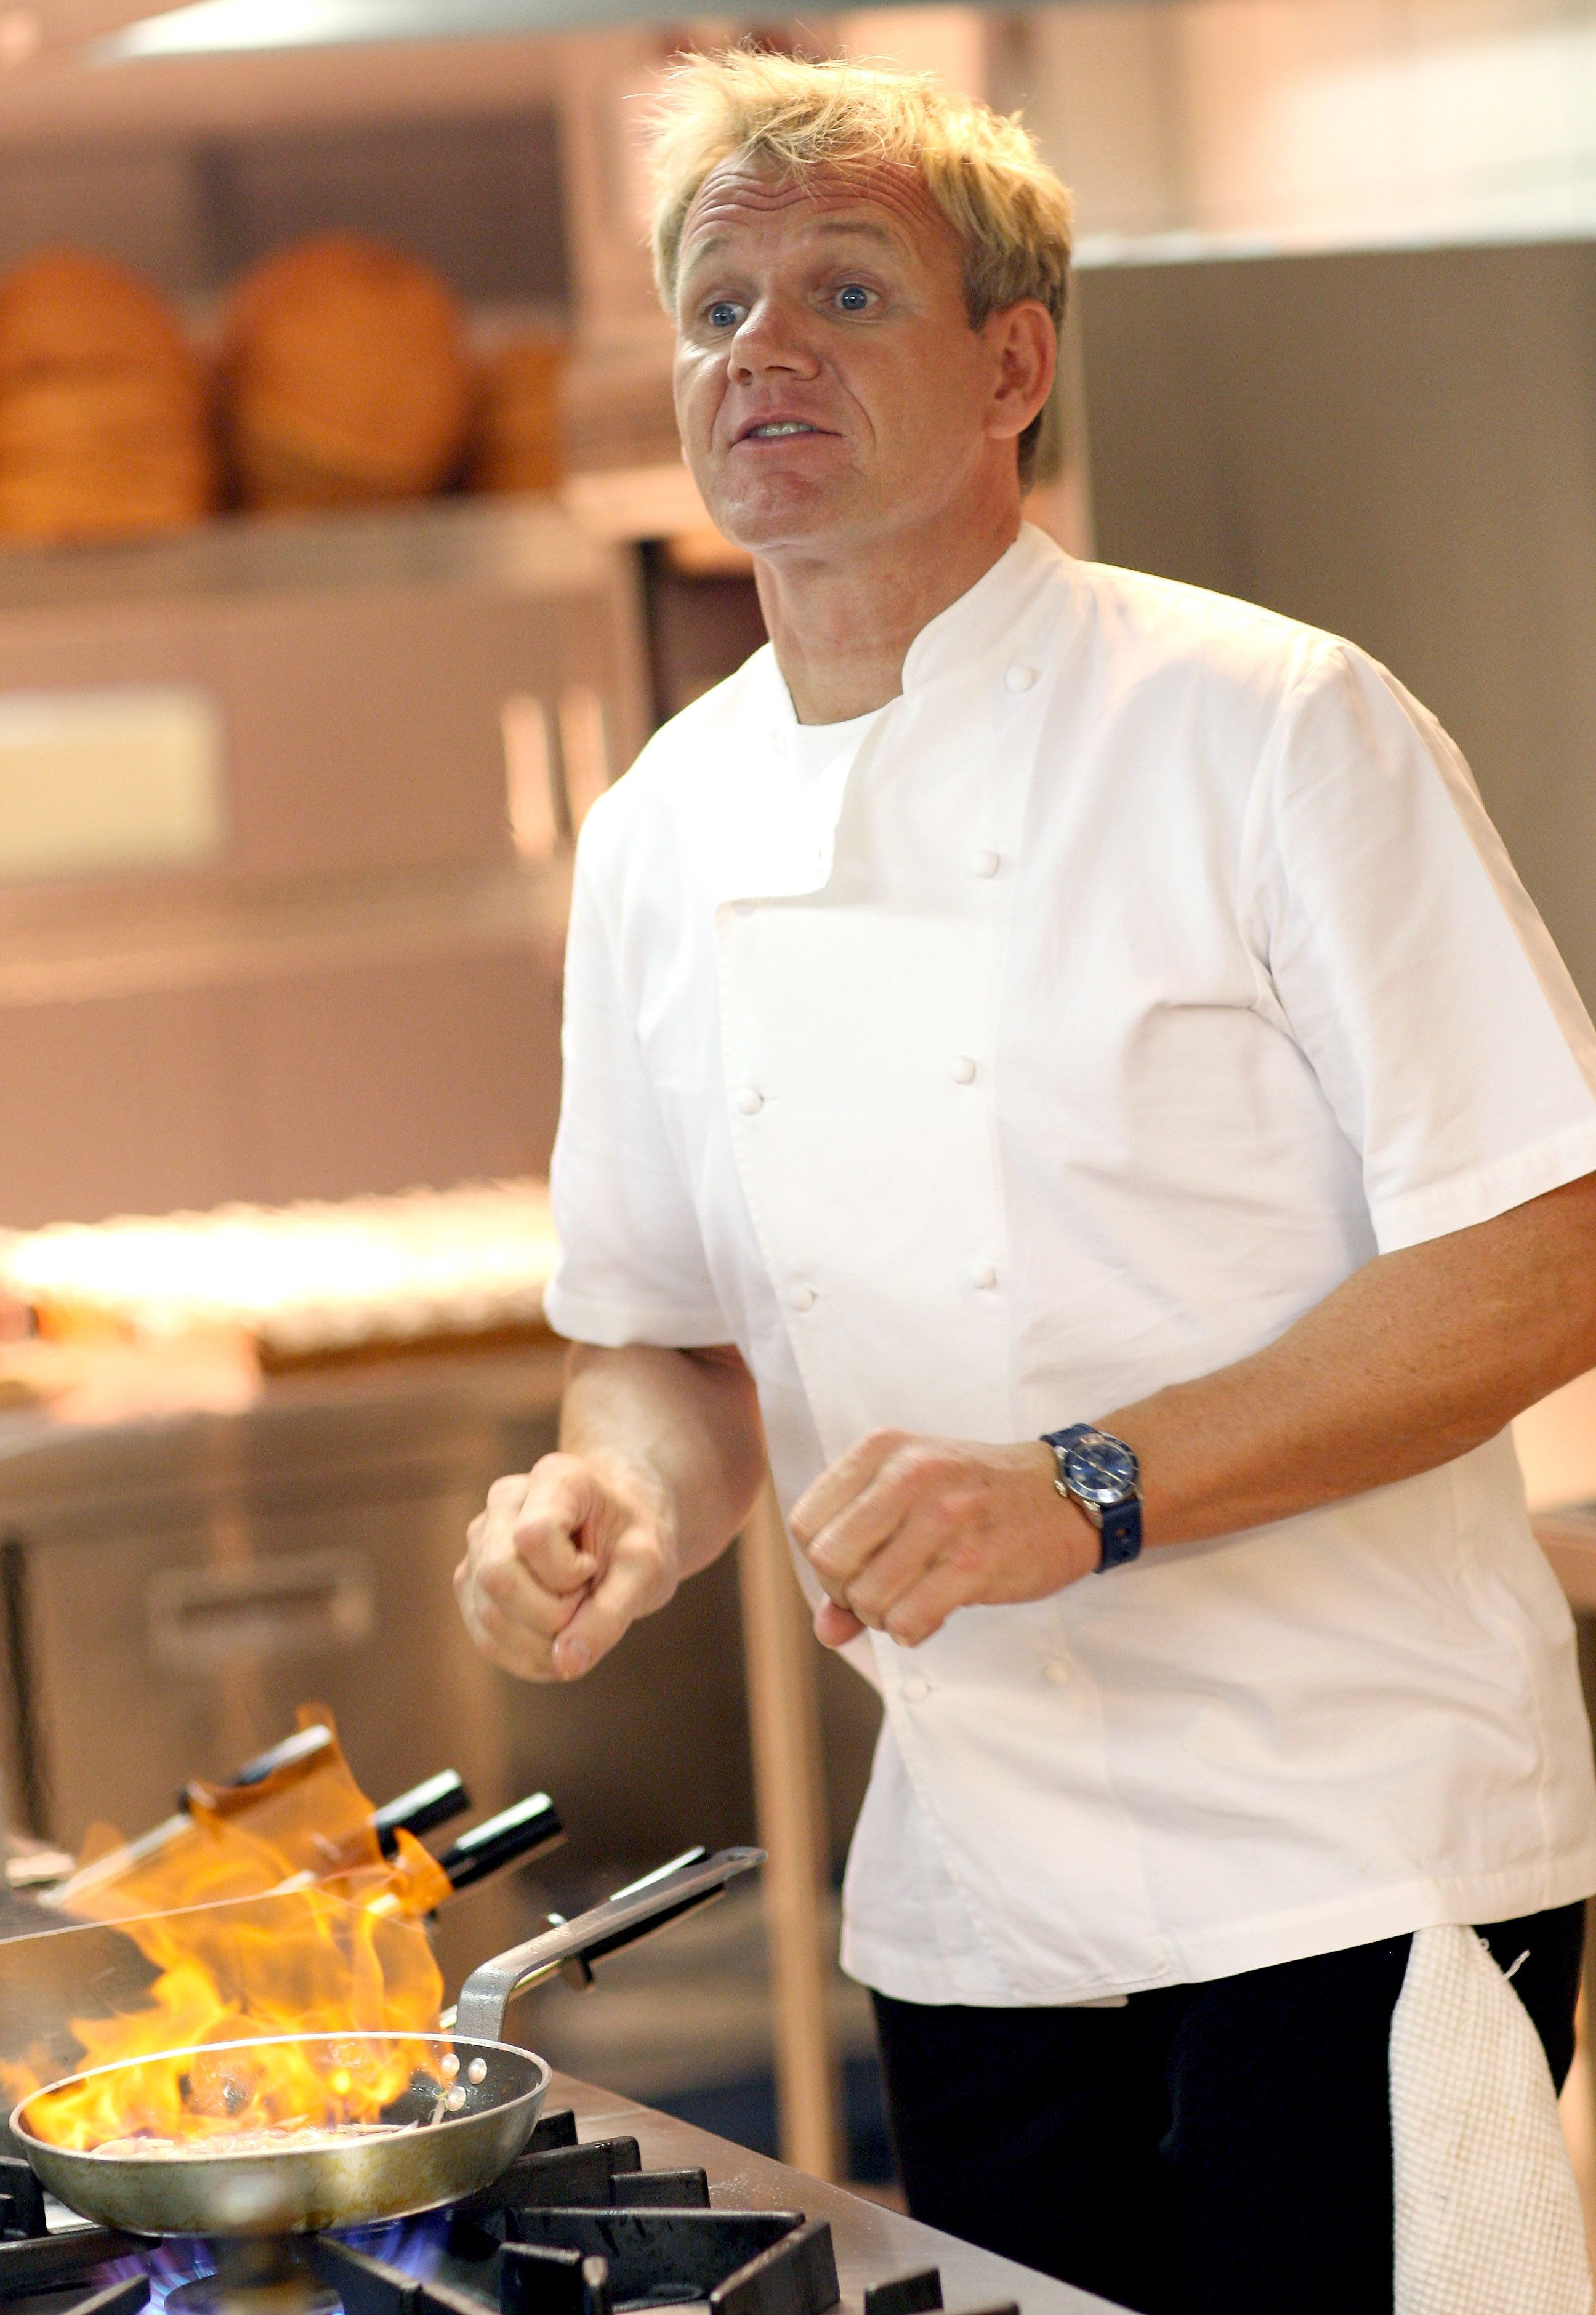 CAPE TOWN, SOUTH AFRICA - APRIL 02:  Celebrity Chef Gordon Ramsey prepares the food for the opening party in his maze Restaurant at the new One&Only Cape Town resort on April 2, 2009 in Cape Town, South Africa. Today is the Grand Opening of Sol Kerzner's first hotel in his home country since 1992. The 130 room property is One&Only's first Urban resort and sits in the fashionable Waterfront district. Celebrities from all over the world including Mariah Carey, Clint Eastwood, Matt Damon, Morgan Freeman, Thandie Newton, Marisa Tomei will attend the event. Gordon Ramsay will be launching his first restaurant in Africa at the resort, Maze and Robert De Niro will be opening Nobu. Nelson Mandela will be attending an intimate luncheon at Maze on Friday to celebrate his long-standing relationship with Mr. Kerzner.  (Photo by Chris Jackson/Getty Images)